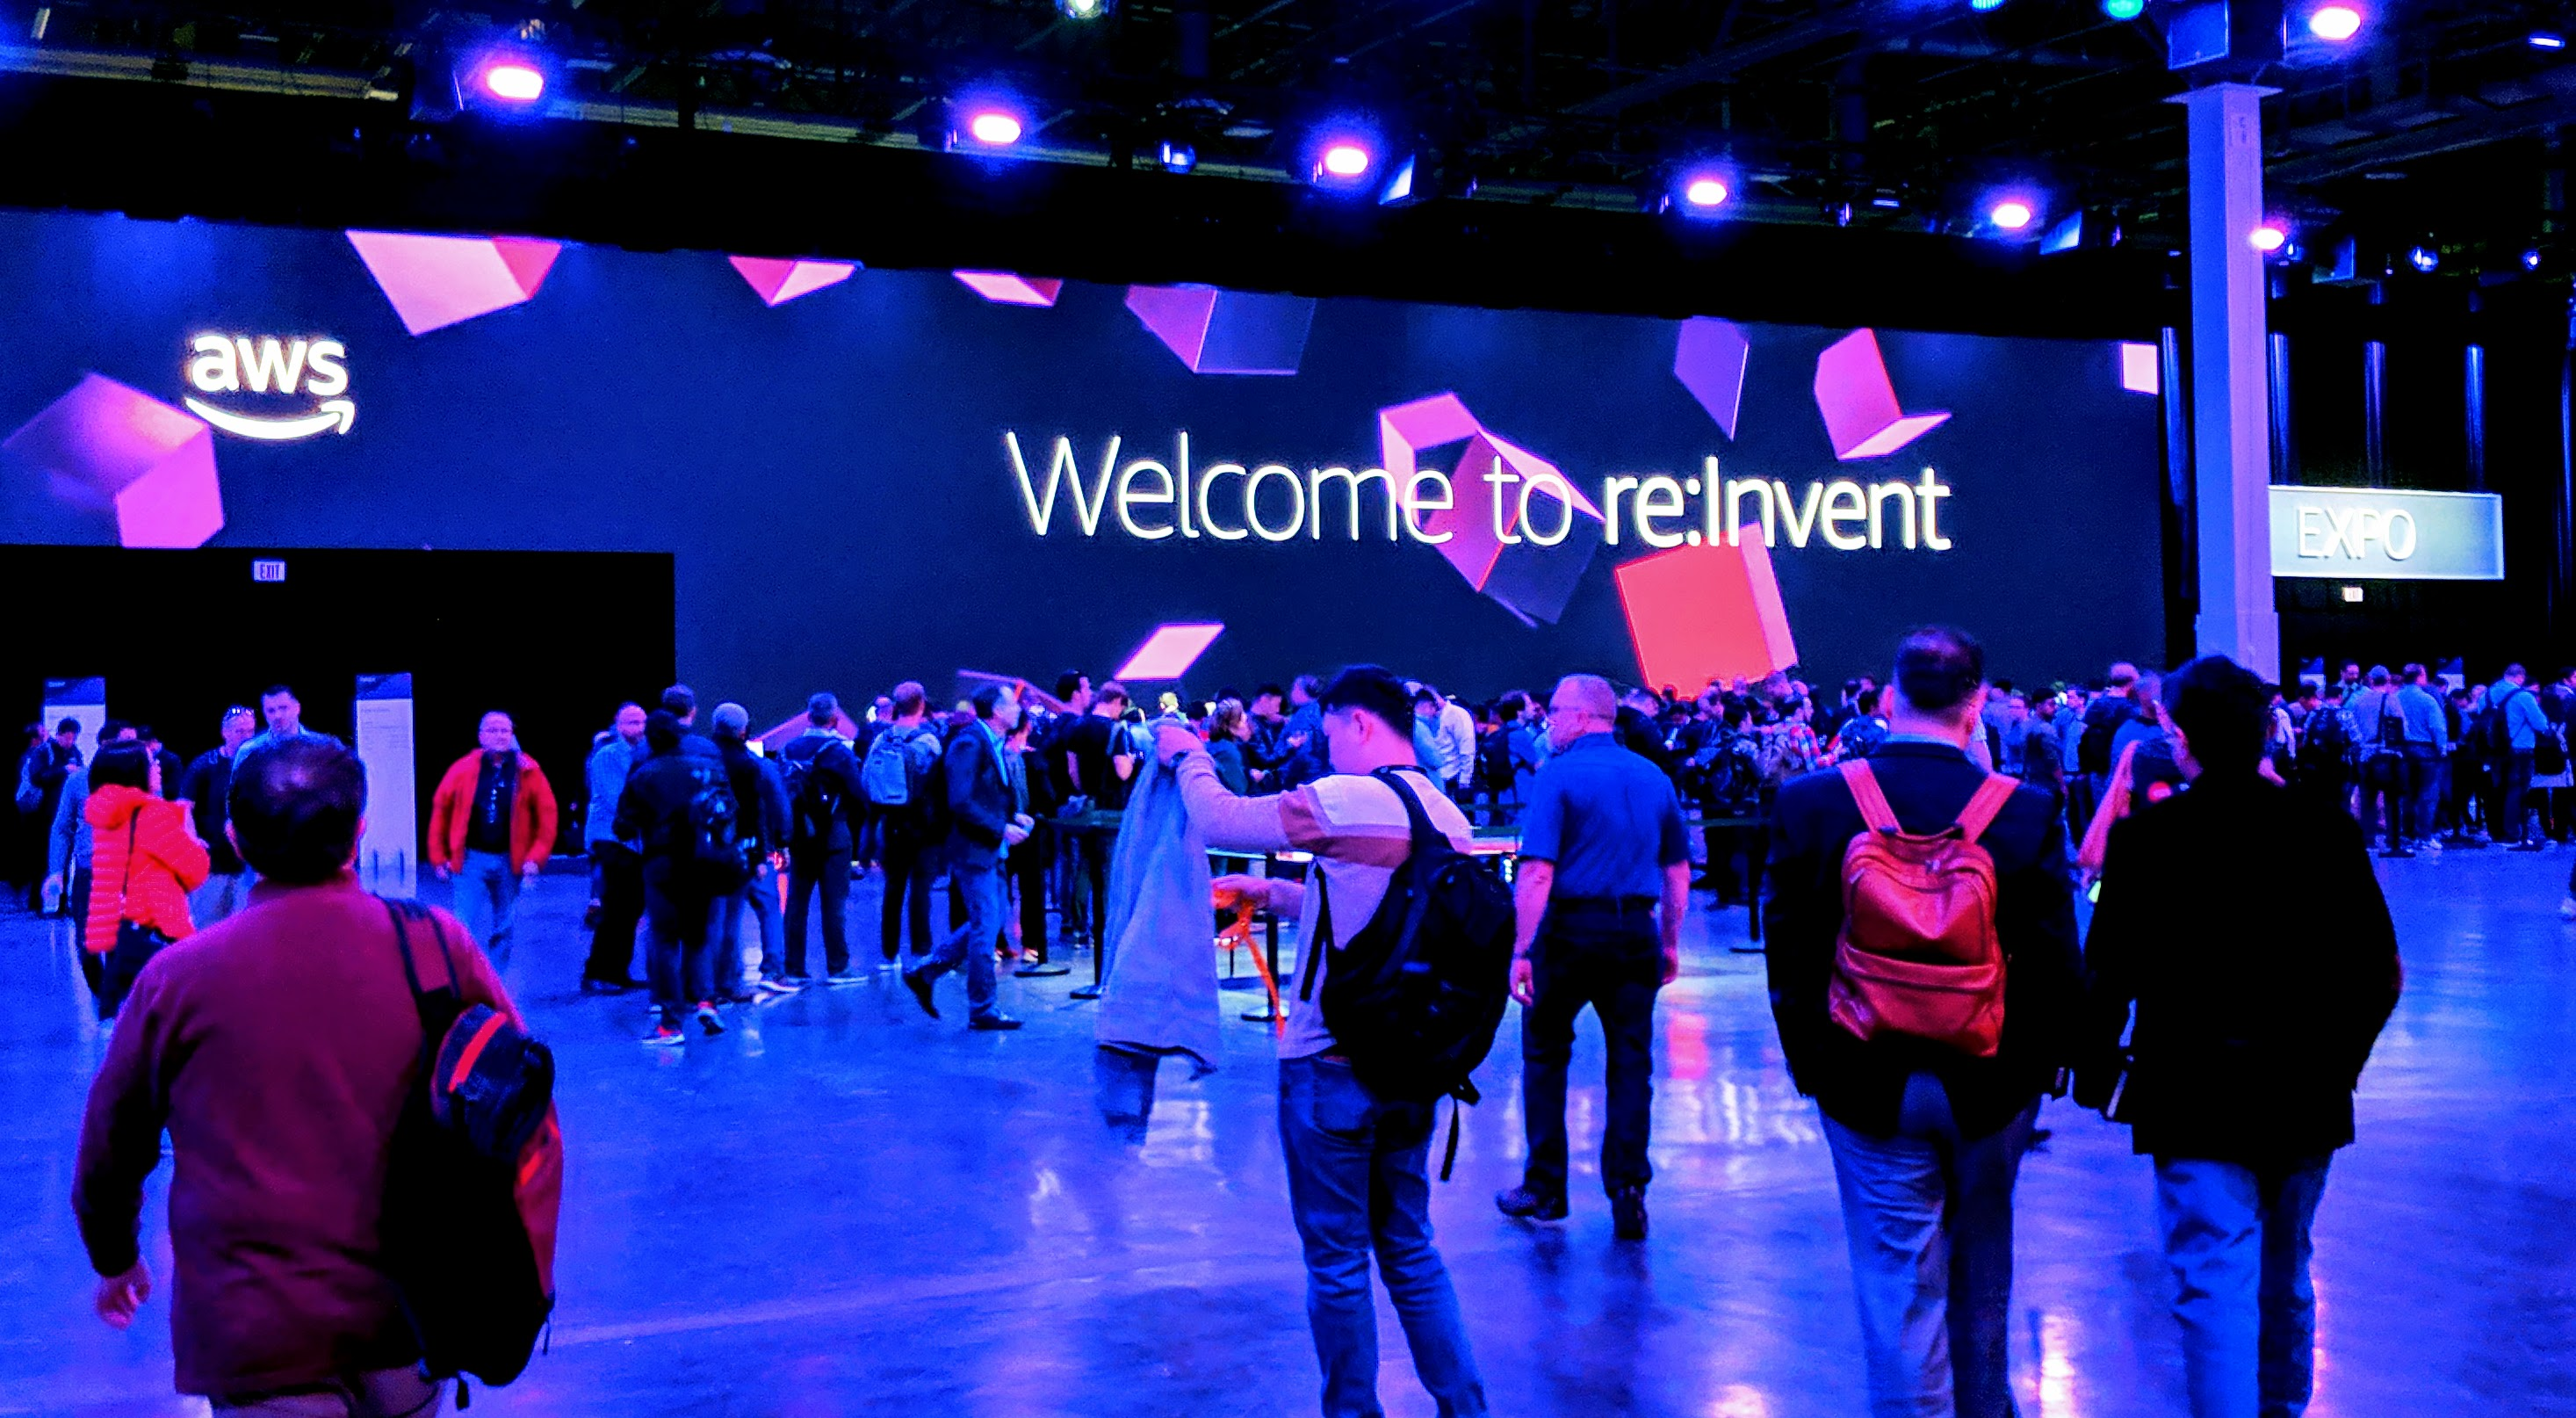 AWS re:Invent welcome